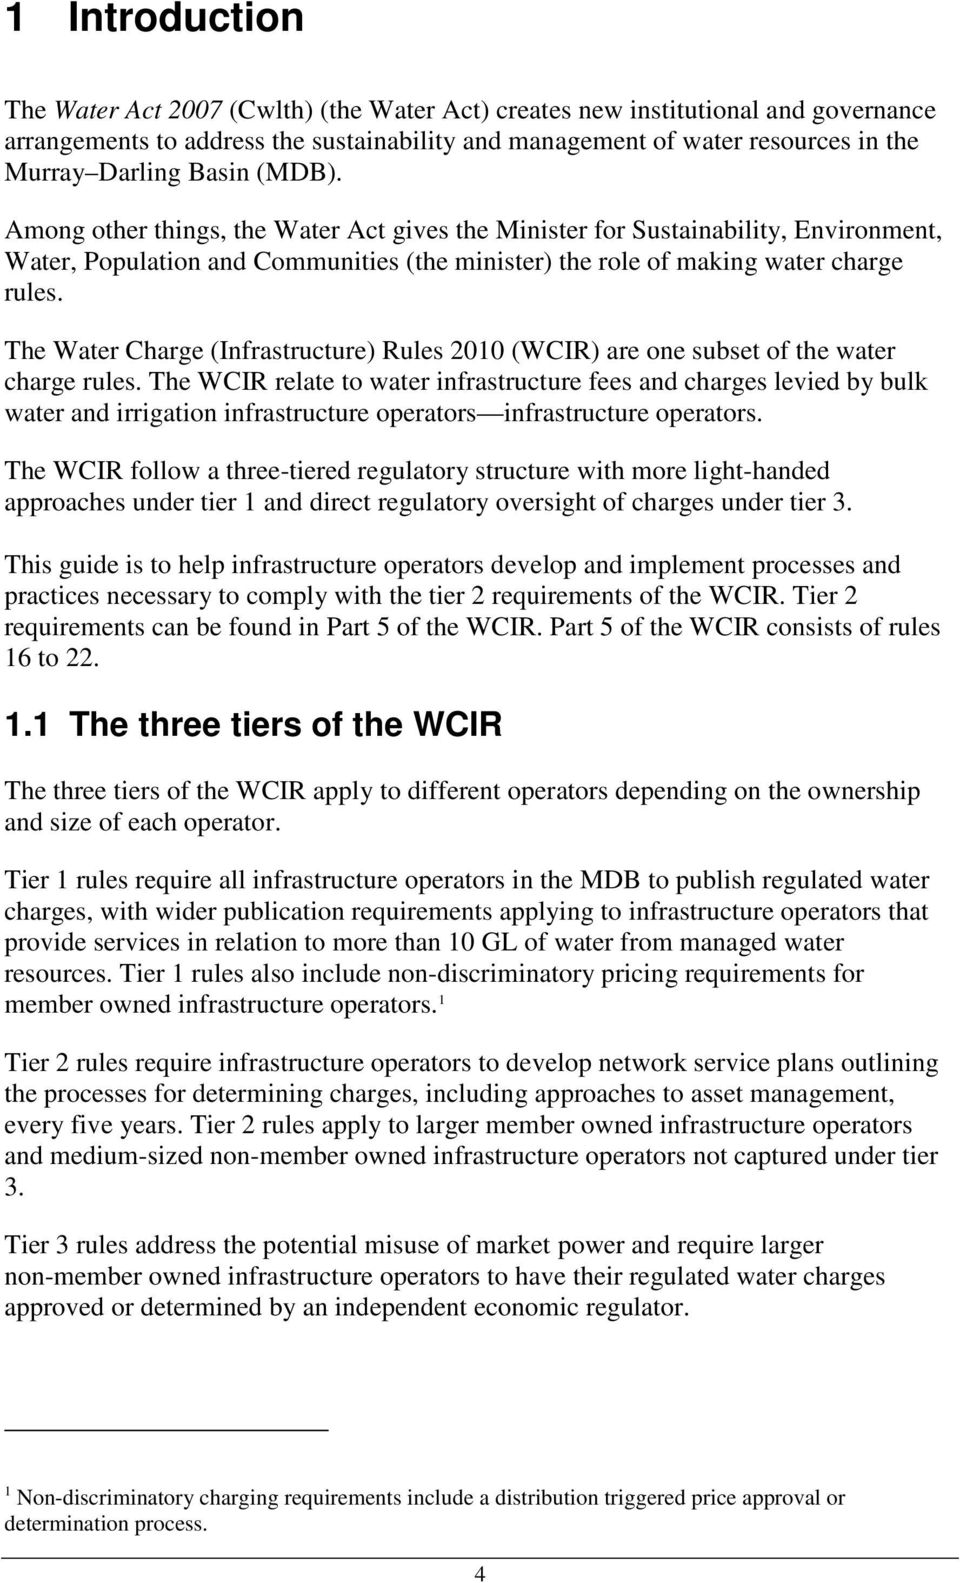 The Water Charge (Infrastructure) Rules 2010 (WCIR) are one subset of the water charge rules.